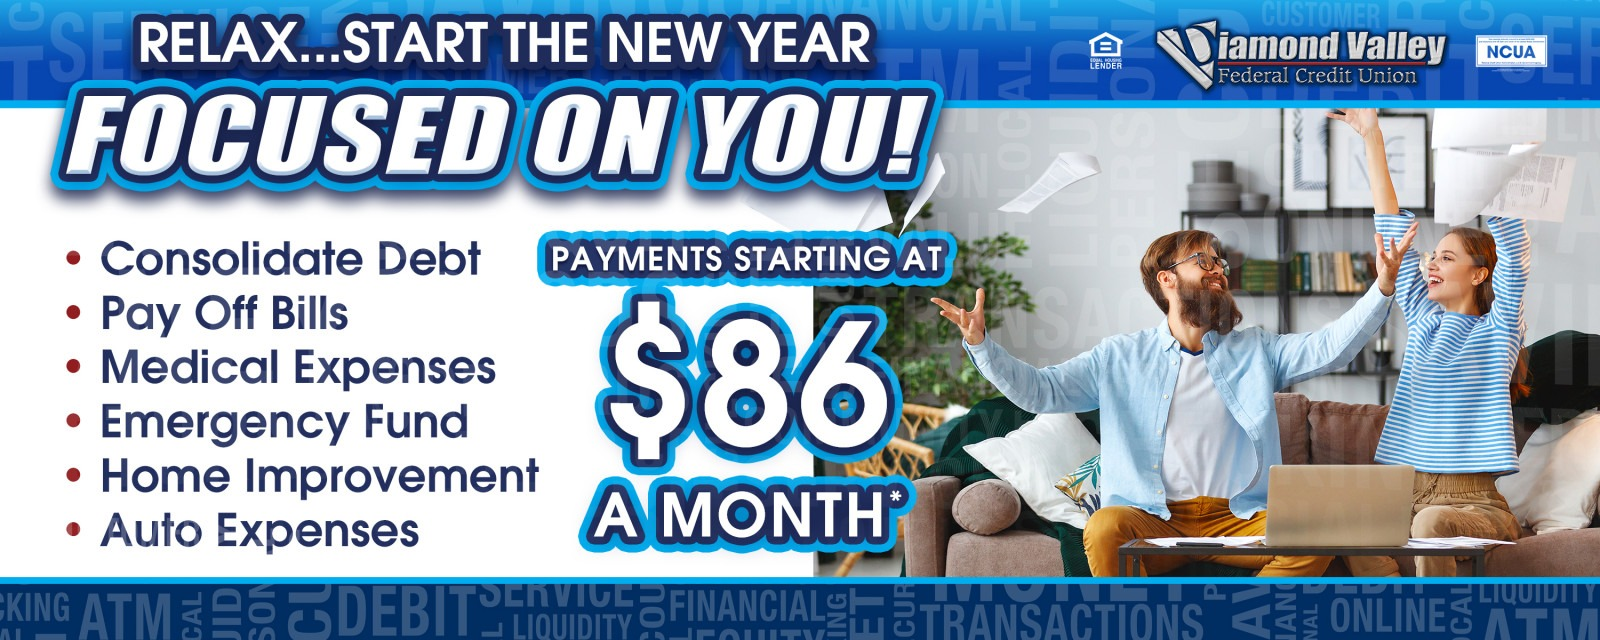 Payments on Personal Loans start as low as $86 per month!